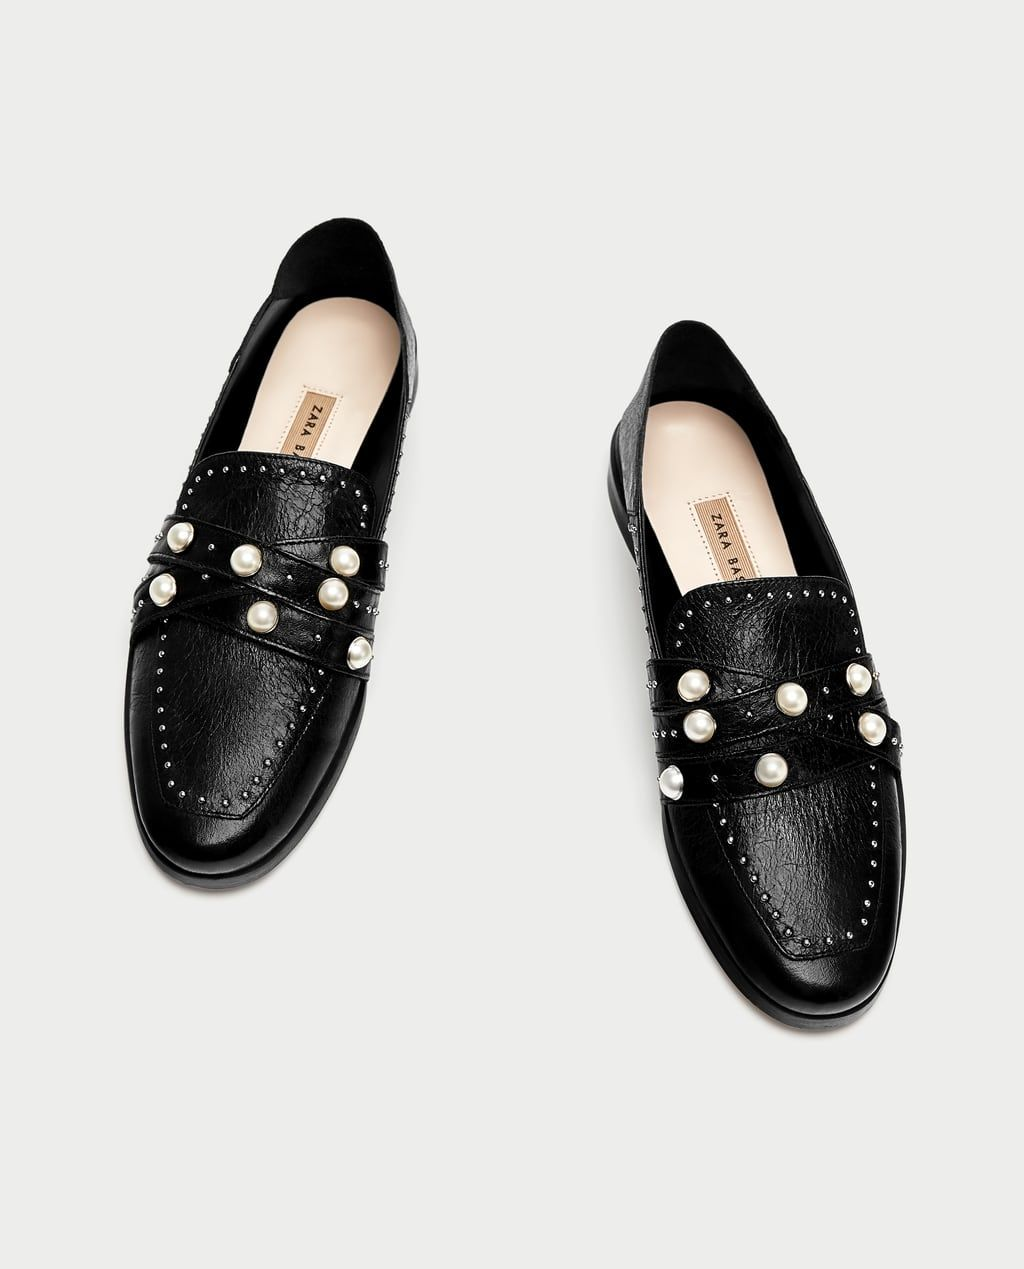 da5b9feb825 Image 5 of LEATHER LOAFERS WITH PEARL BEADS from Zara